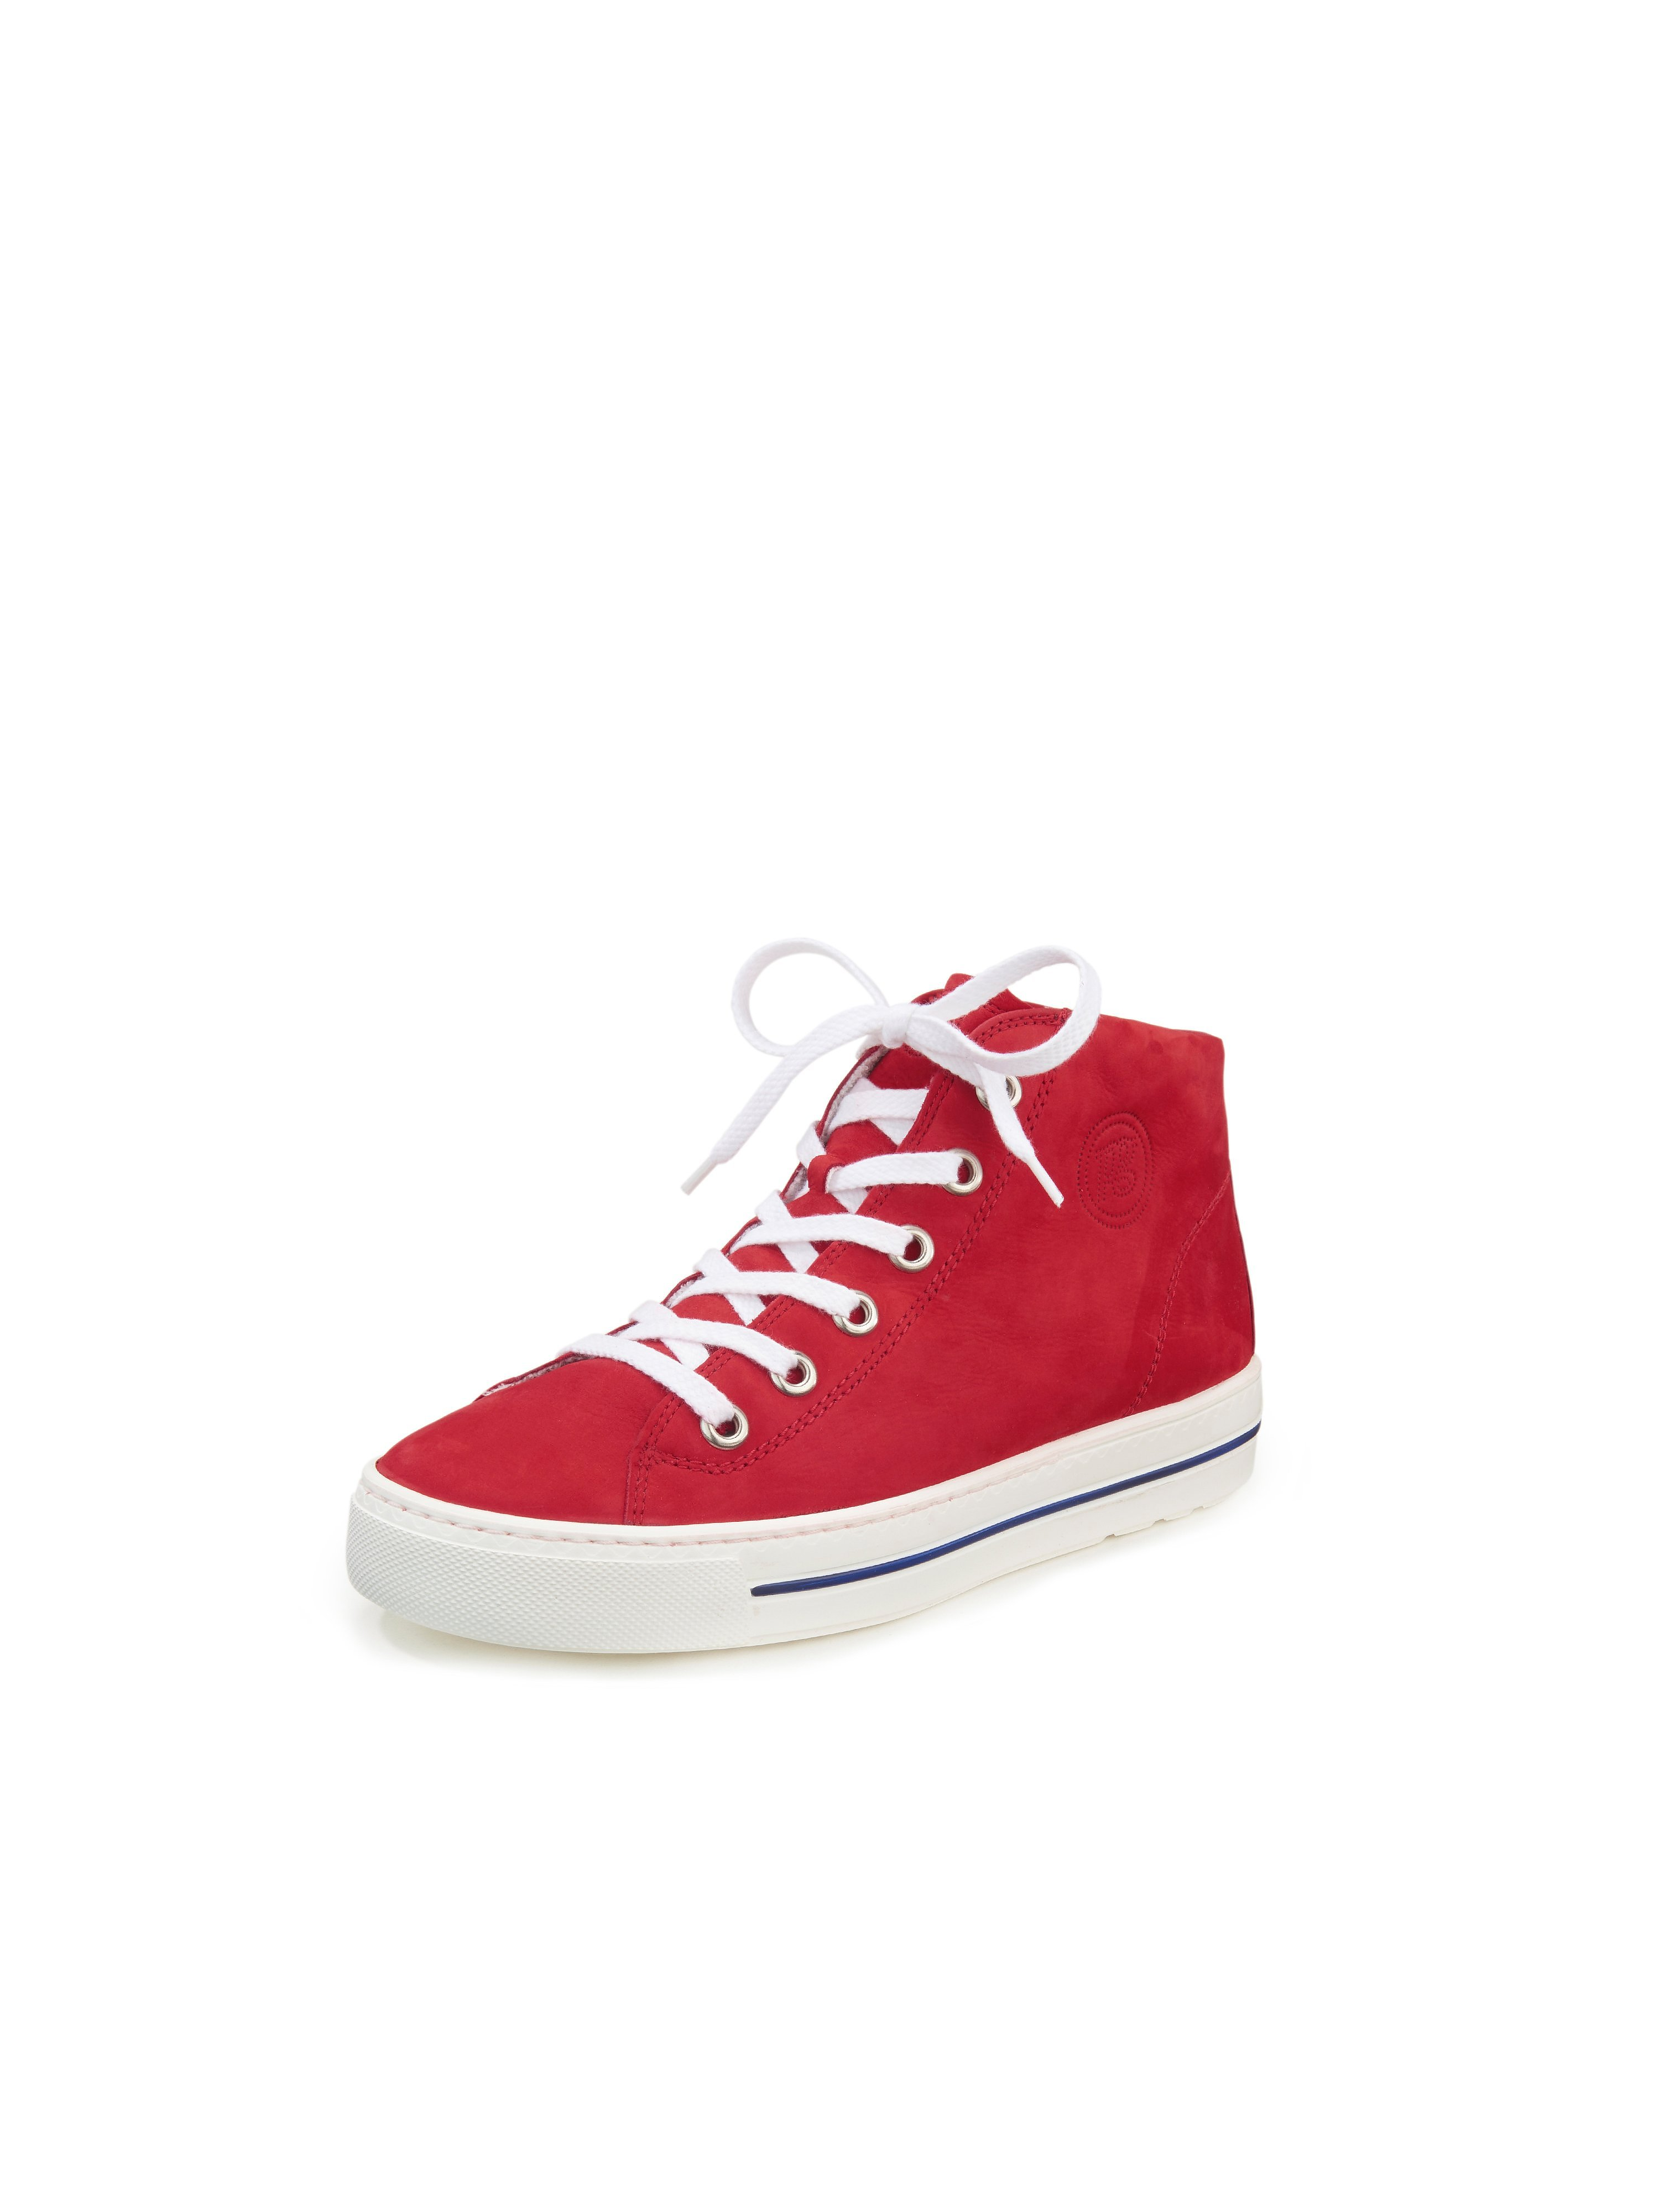 Ankle-high sneakers Paul Green red